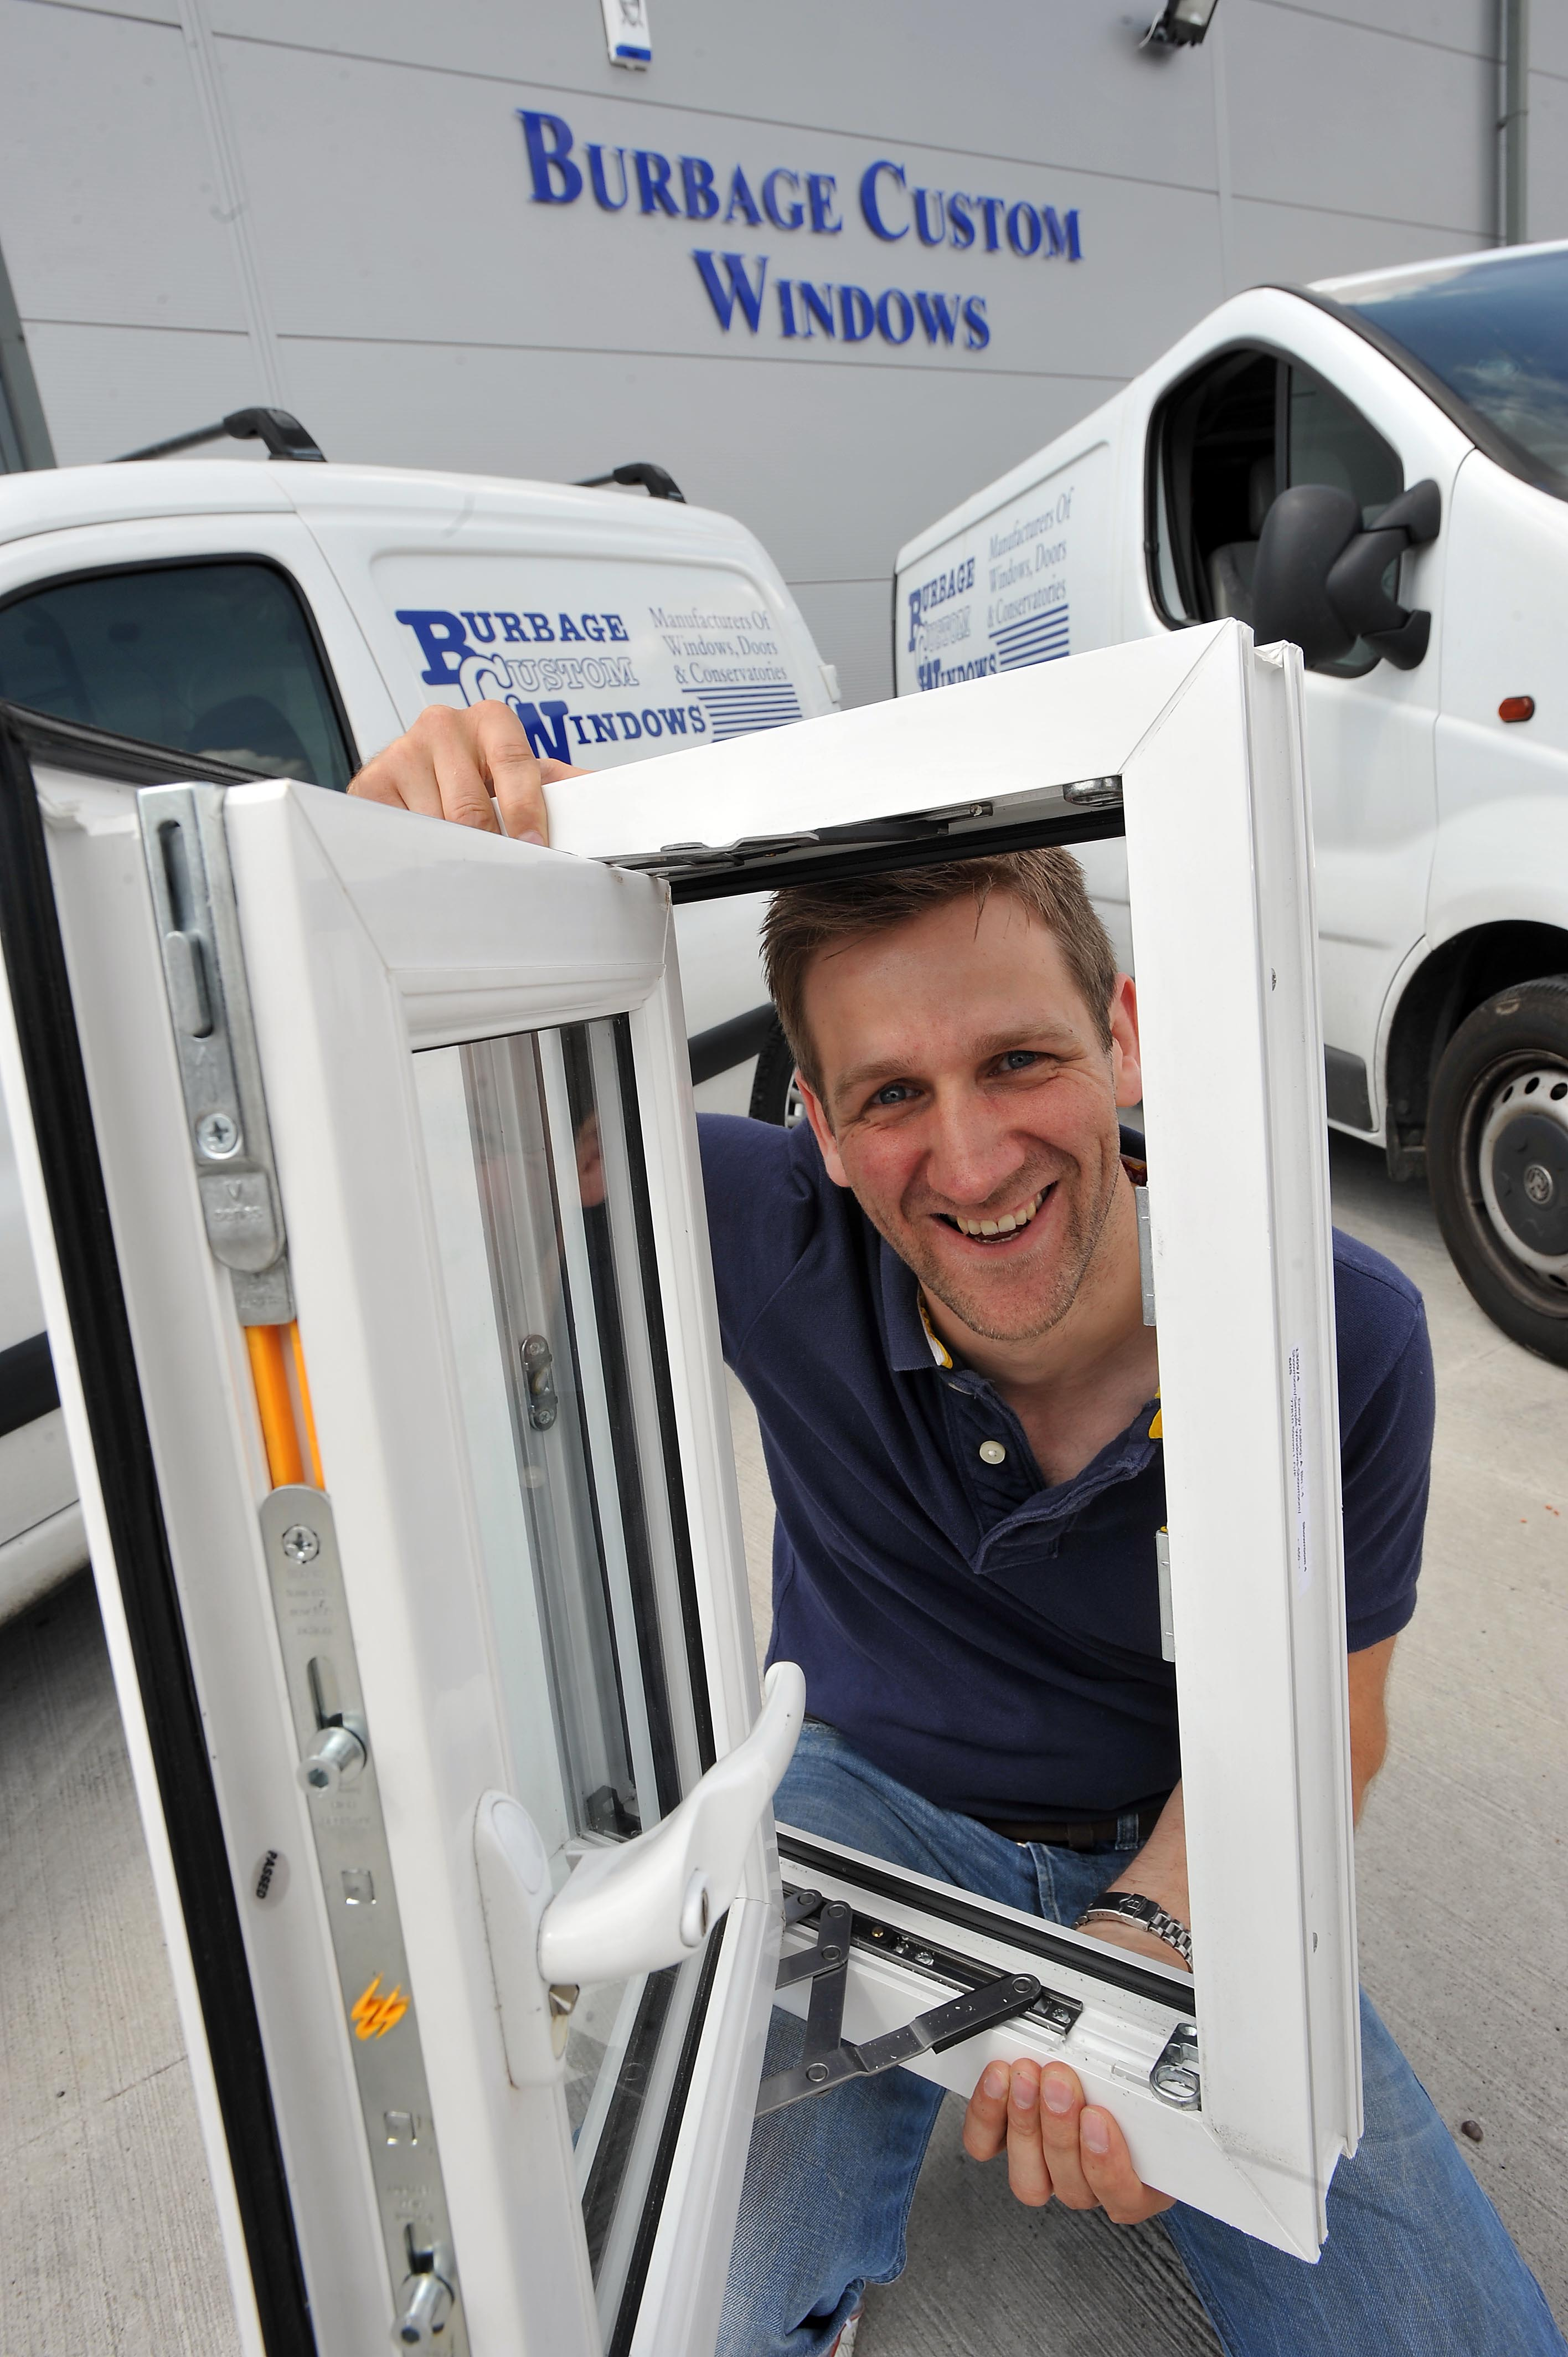 Burbage Custom Windows invests in automation to meet growing demand